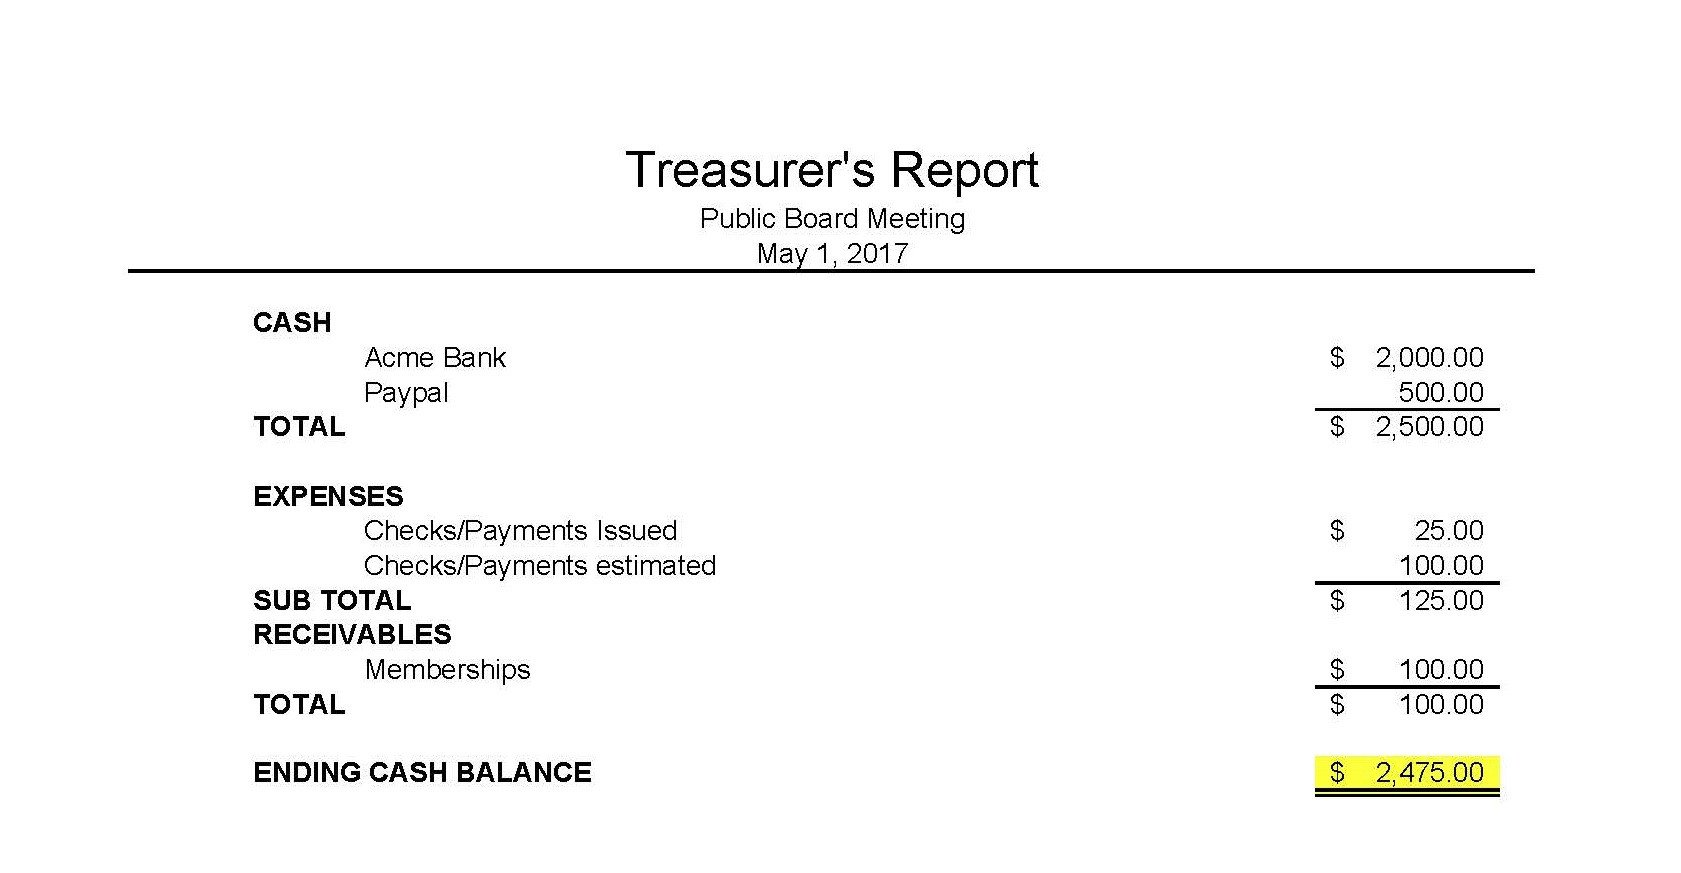 Treasurer Report Template Non Profit Masna Club Accounting 101